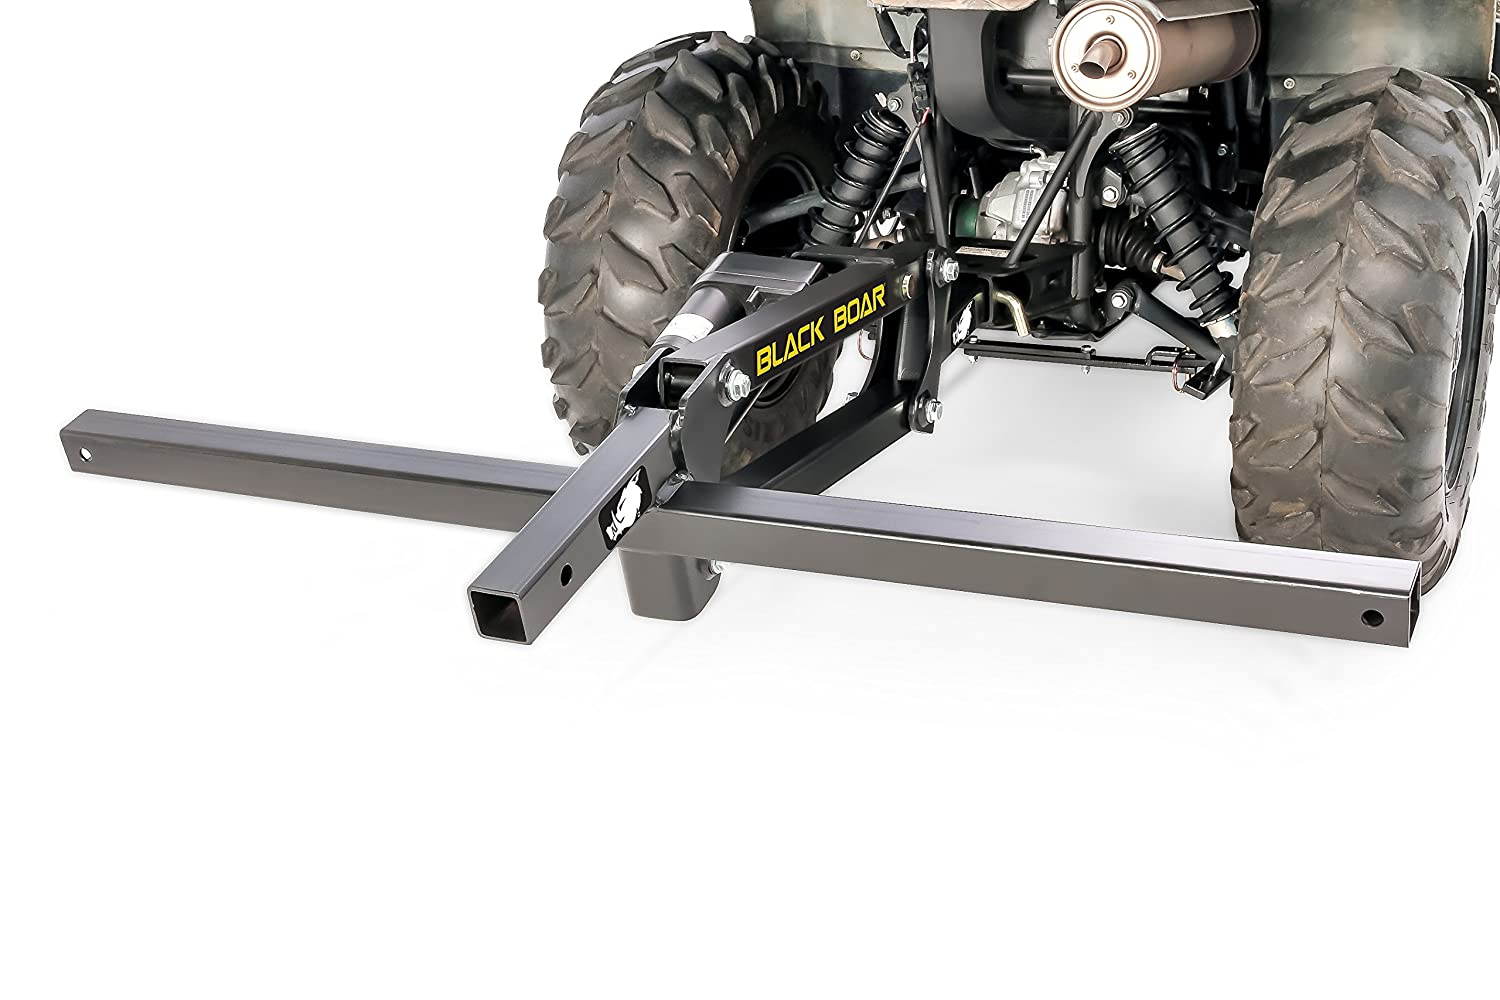 Black Boar Atv Utv Motorized Implement Lift W Warn Plow Actuator Wiring Diagram And Harnesscontrol Switchuse To Cultivateestablish Food Plot